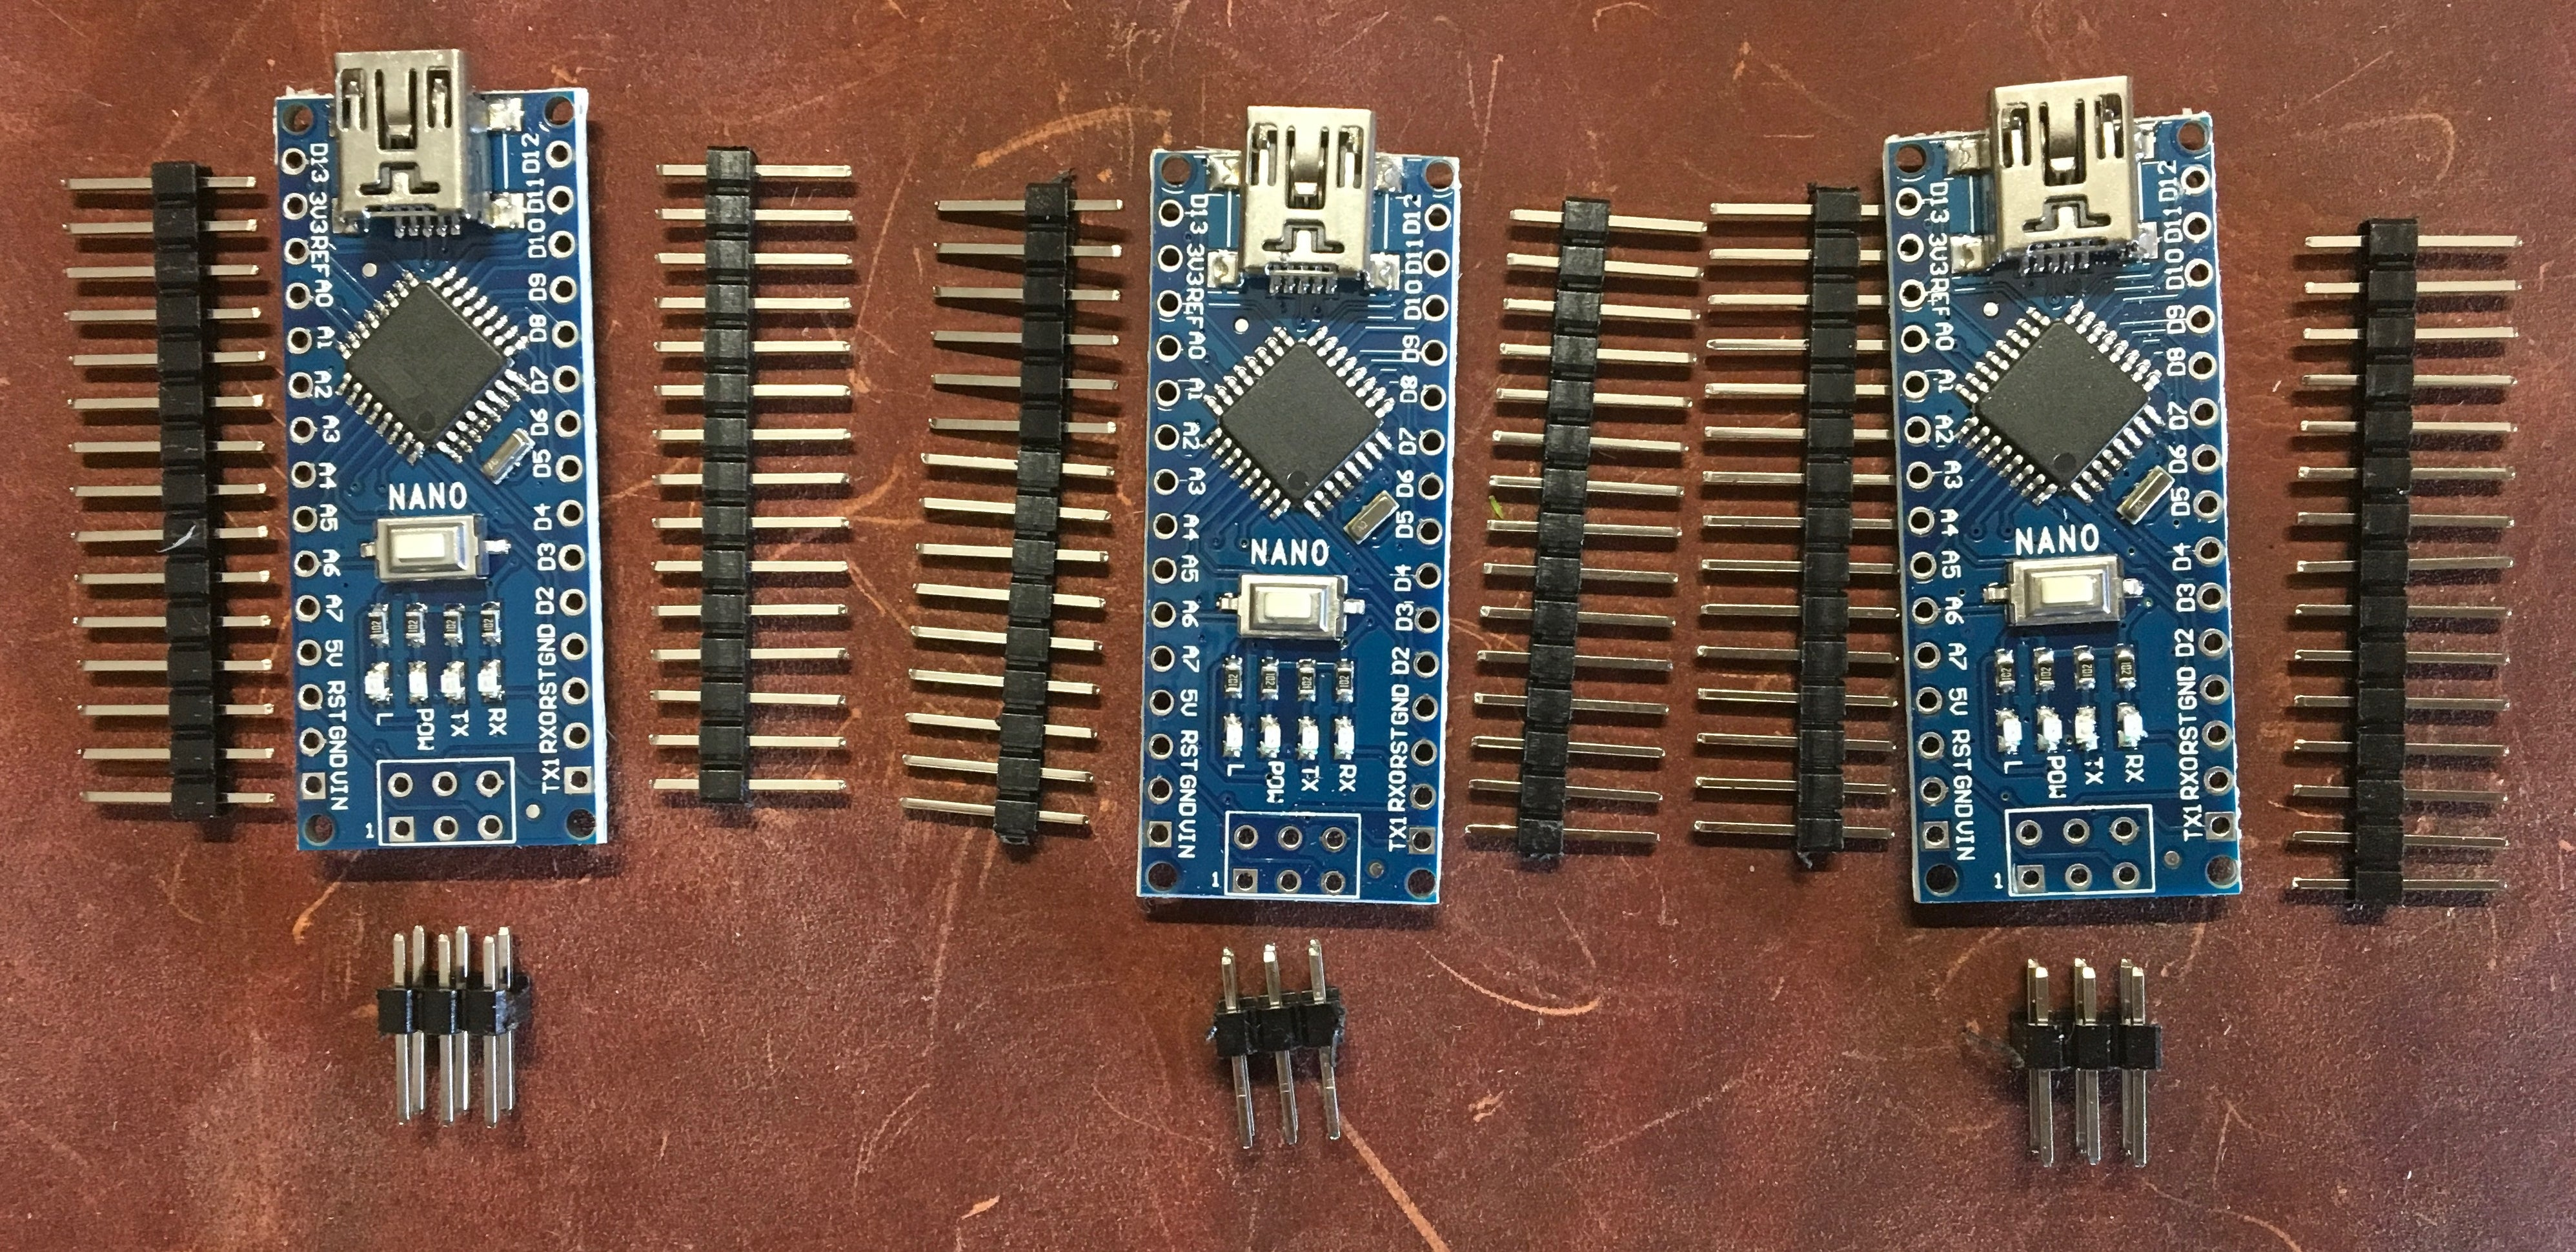 3x Arduino Nano v3 compatible ATMega328P with 2019 16Mhz Bootloader Optiboot - Server On The Move